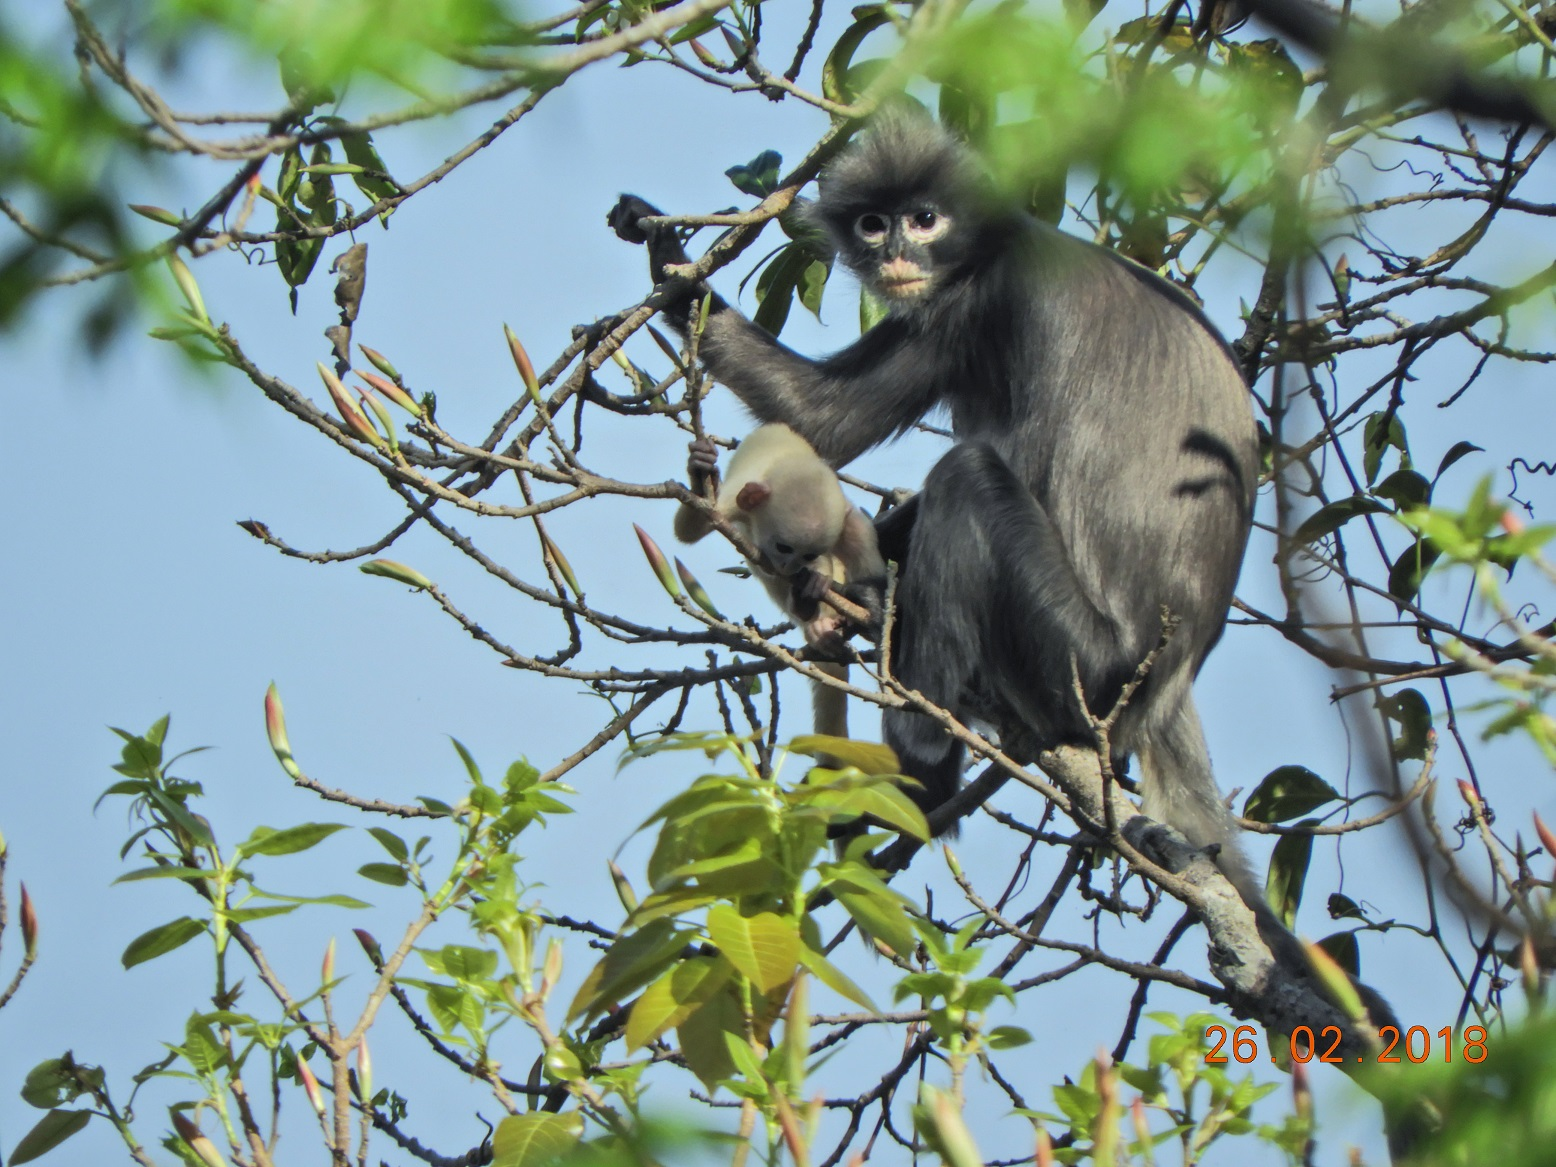 (Foto: Thaung Win / German Primate Center (DPZ)- Leibniz Institute for Primate Research / AFP)